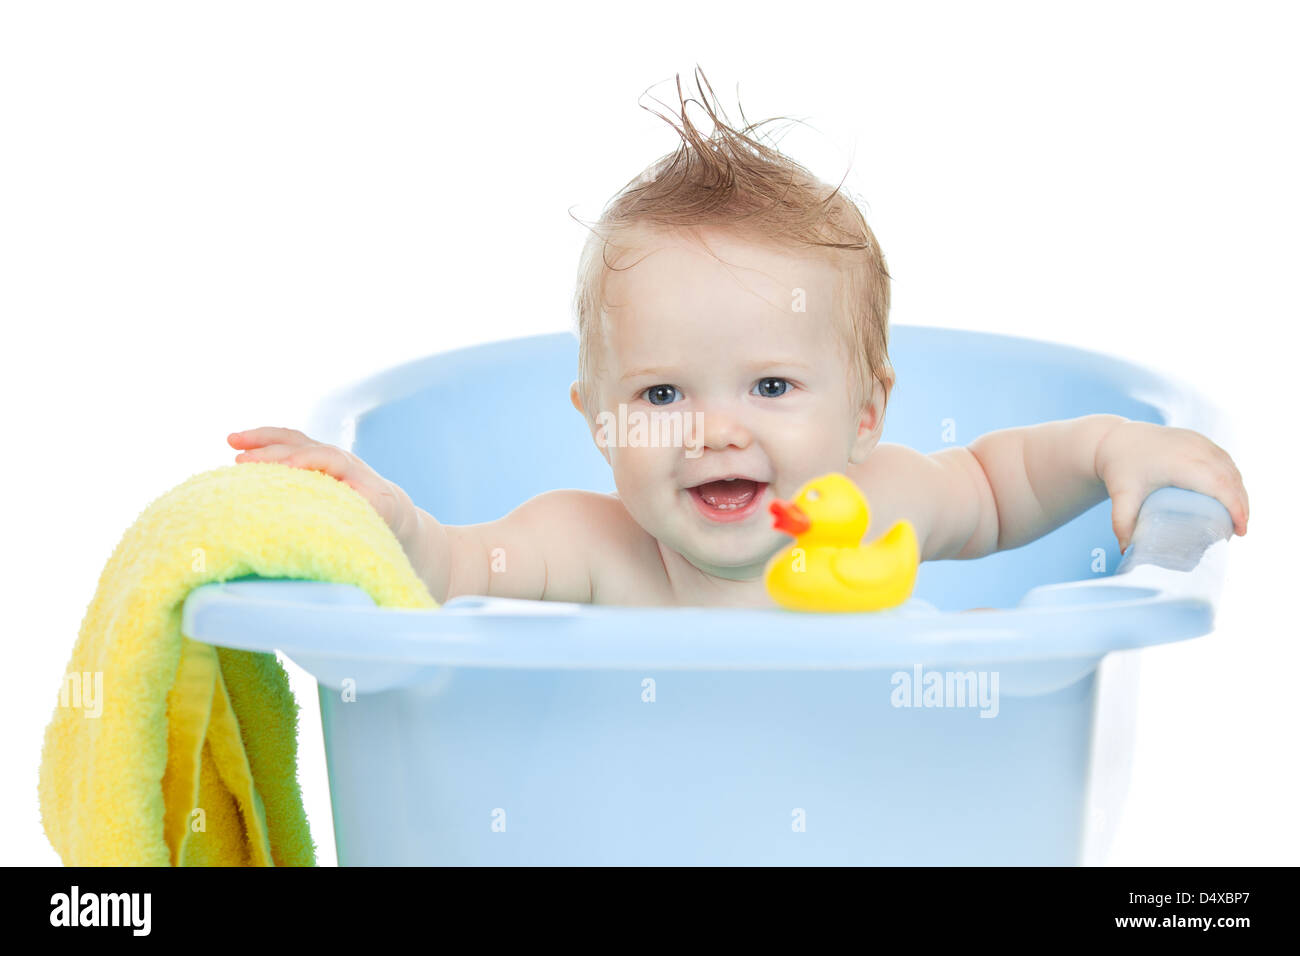 Small Baby Boy In Tub Stock Photos & Small Baby Boy In Tub Stock ...